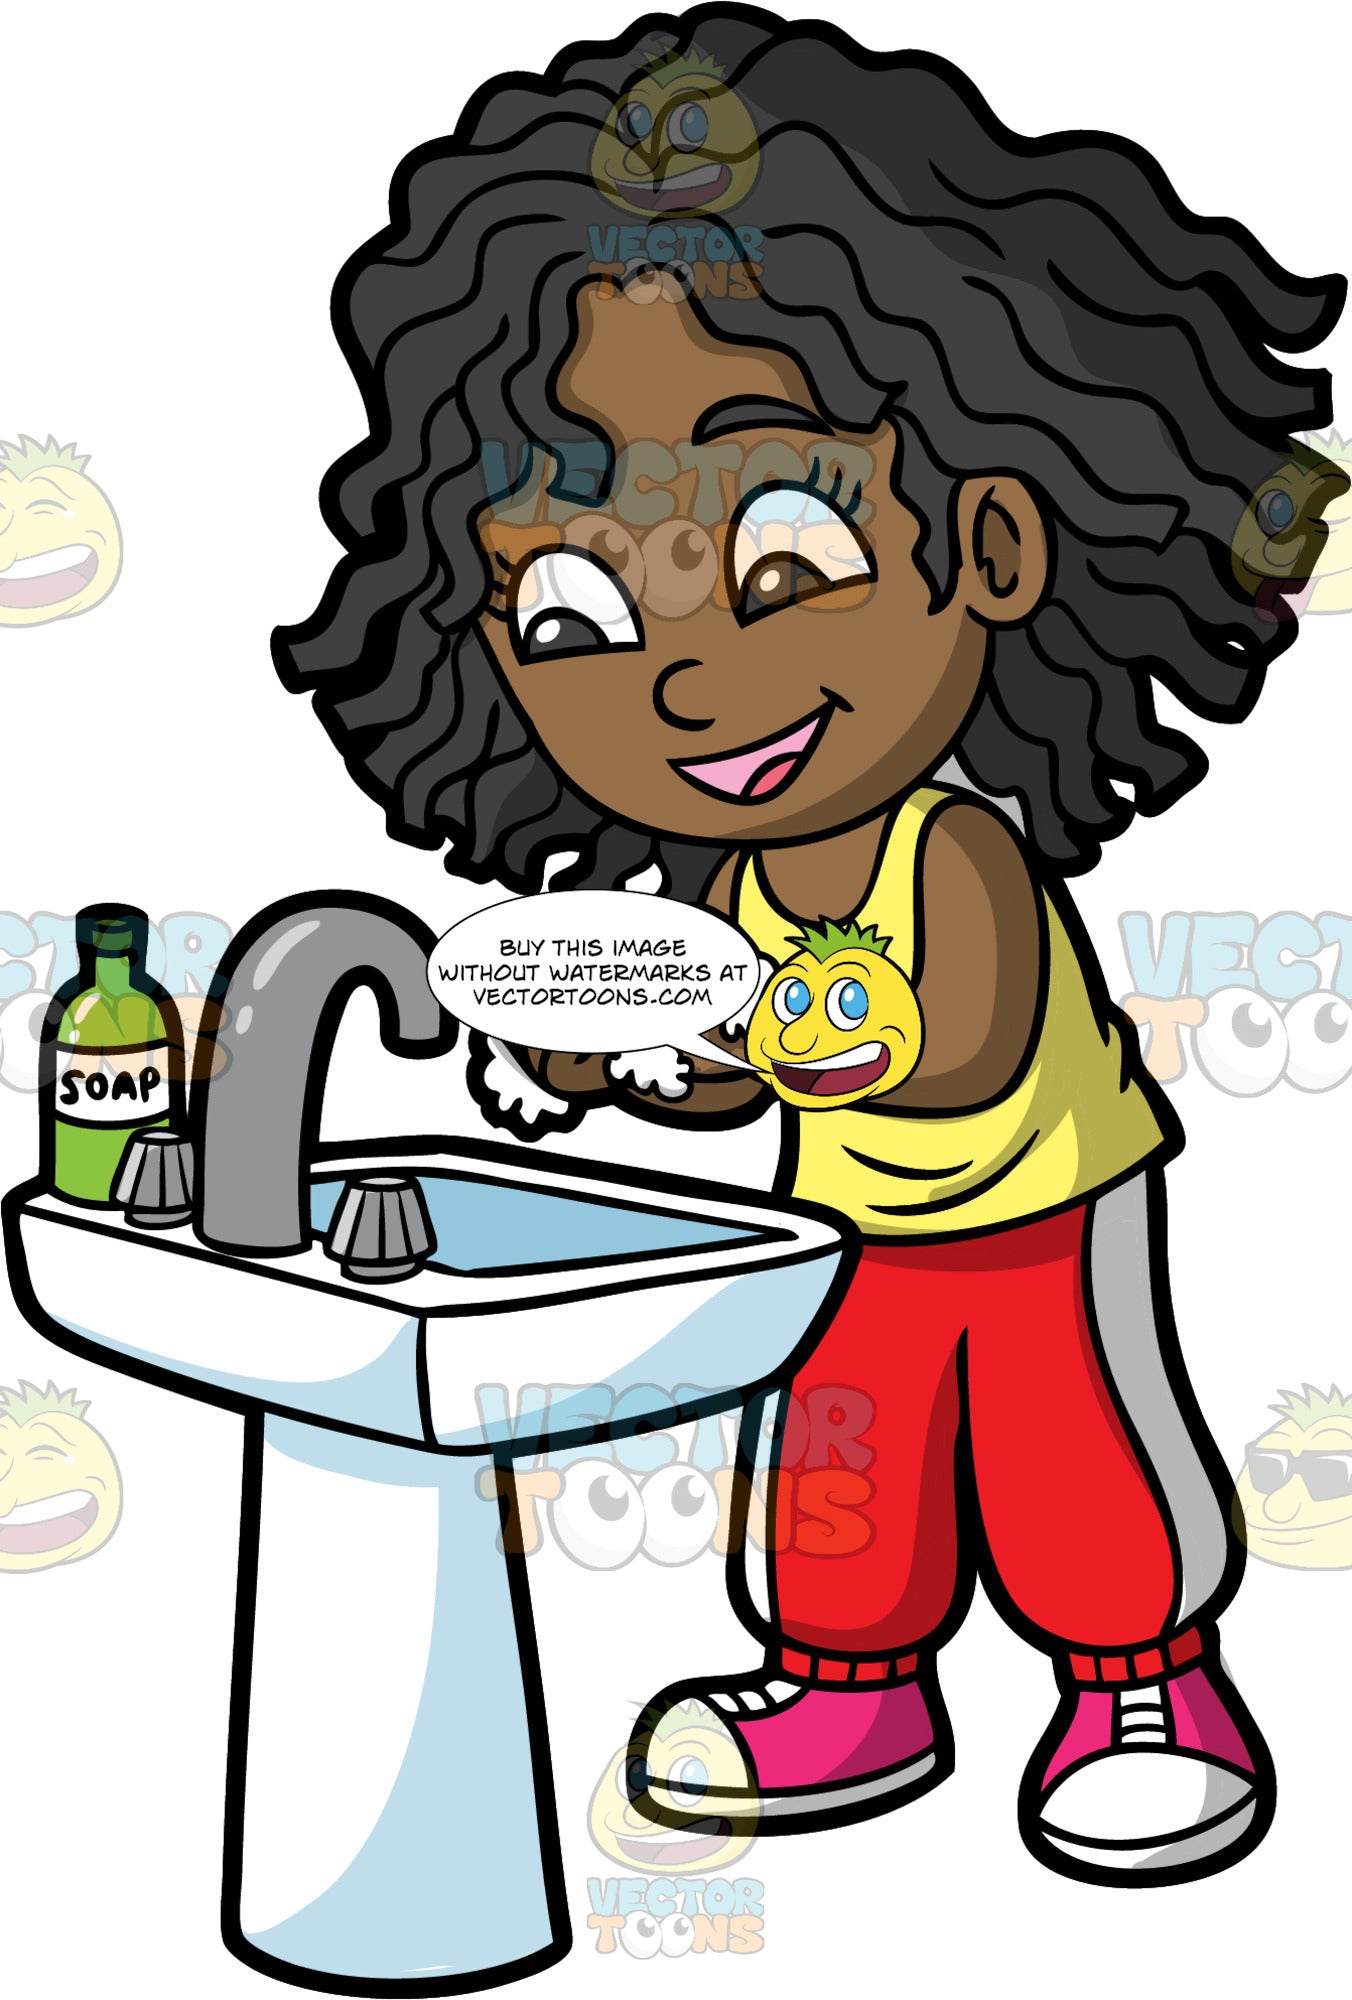 A Girl Washing Her Hands With Soap. A black girl wearing red and white track pants, a yellow tank top, and pink sneakers, standing at the sink washing her hands with soap